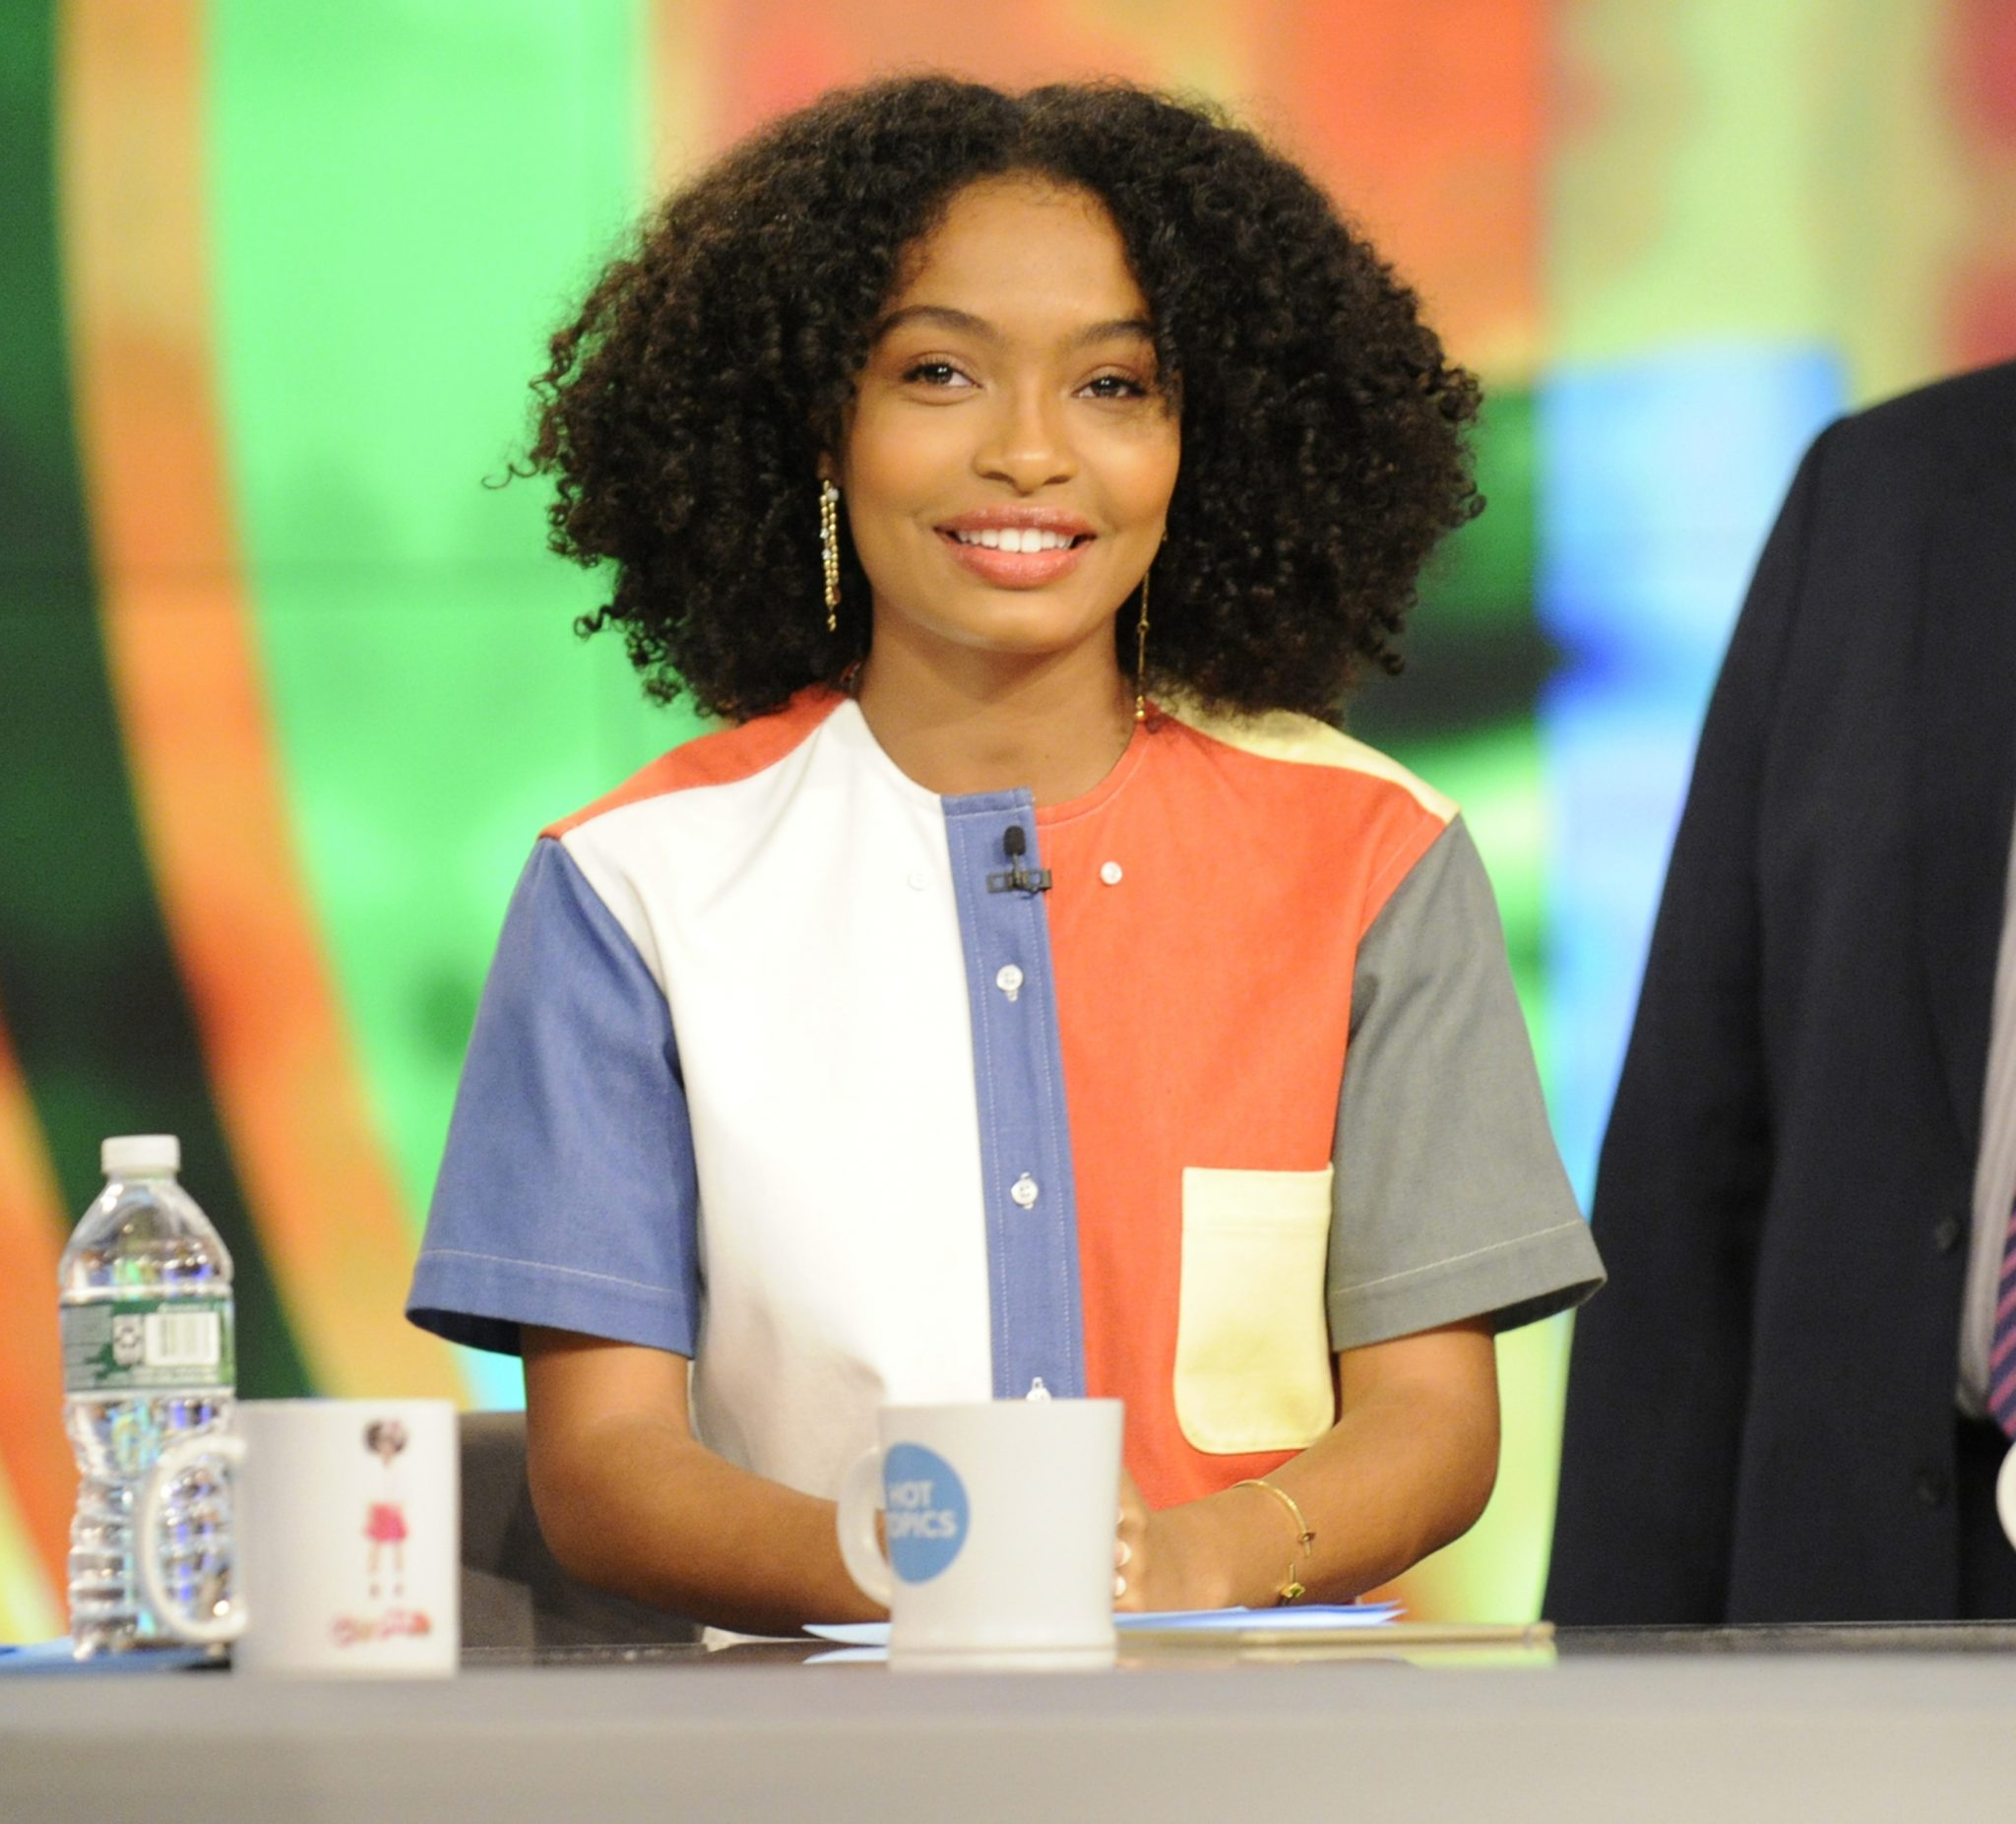 In Case You Missed It: Yara Shahidi On The View